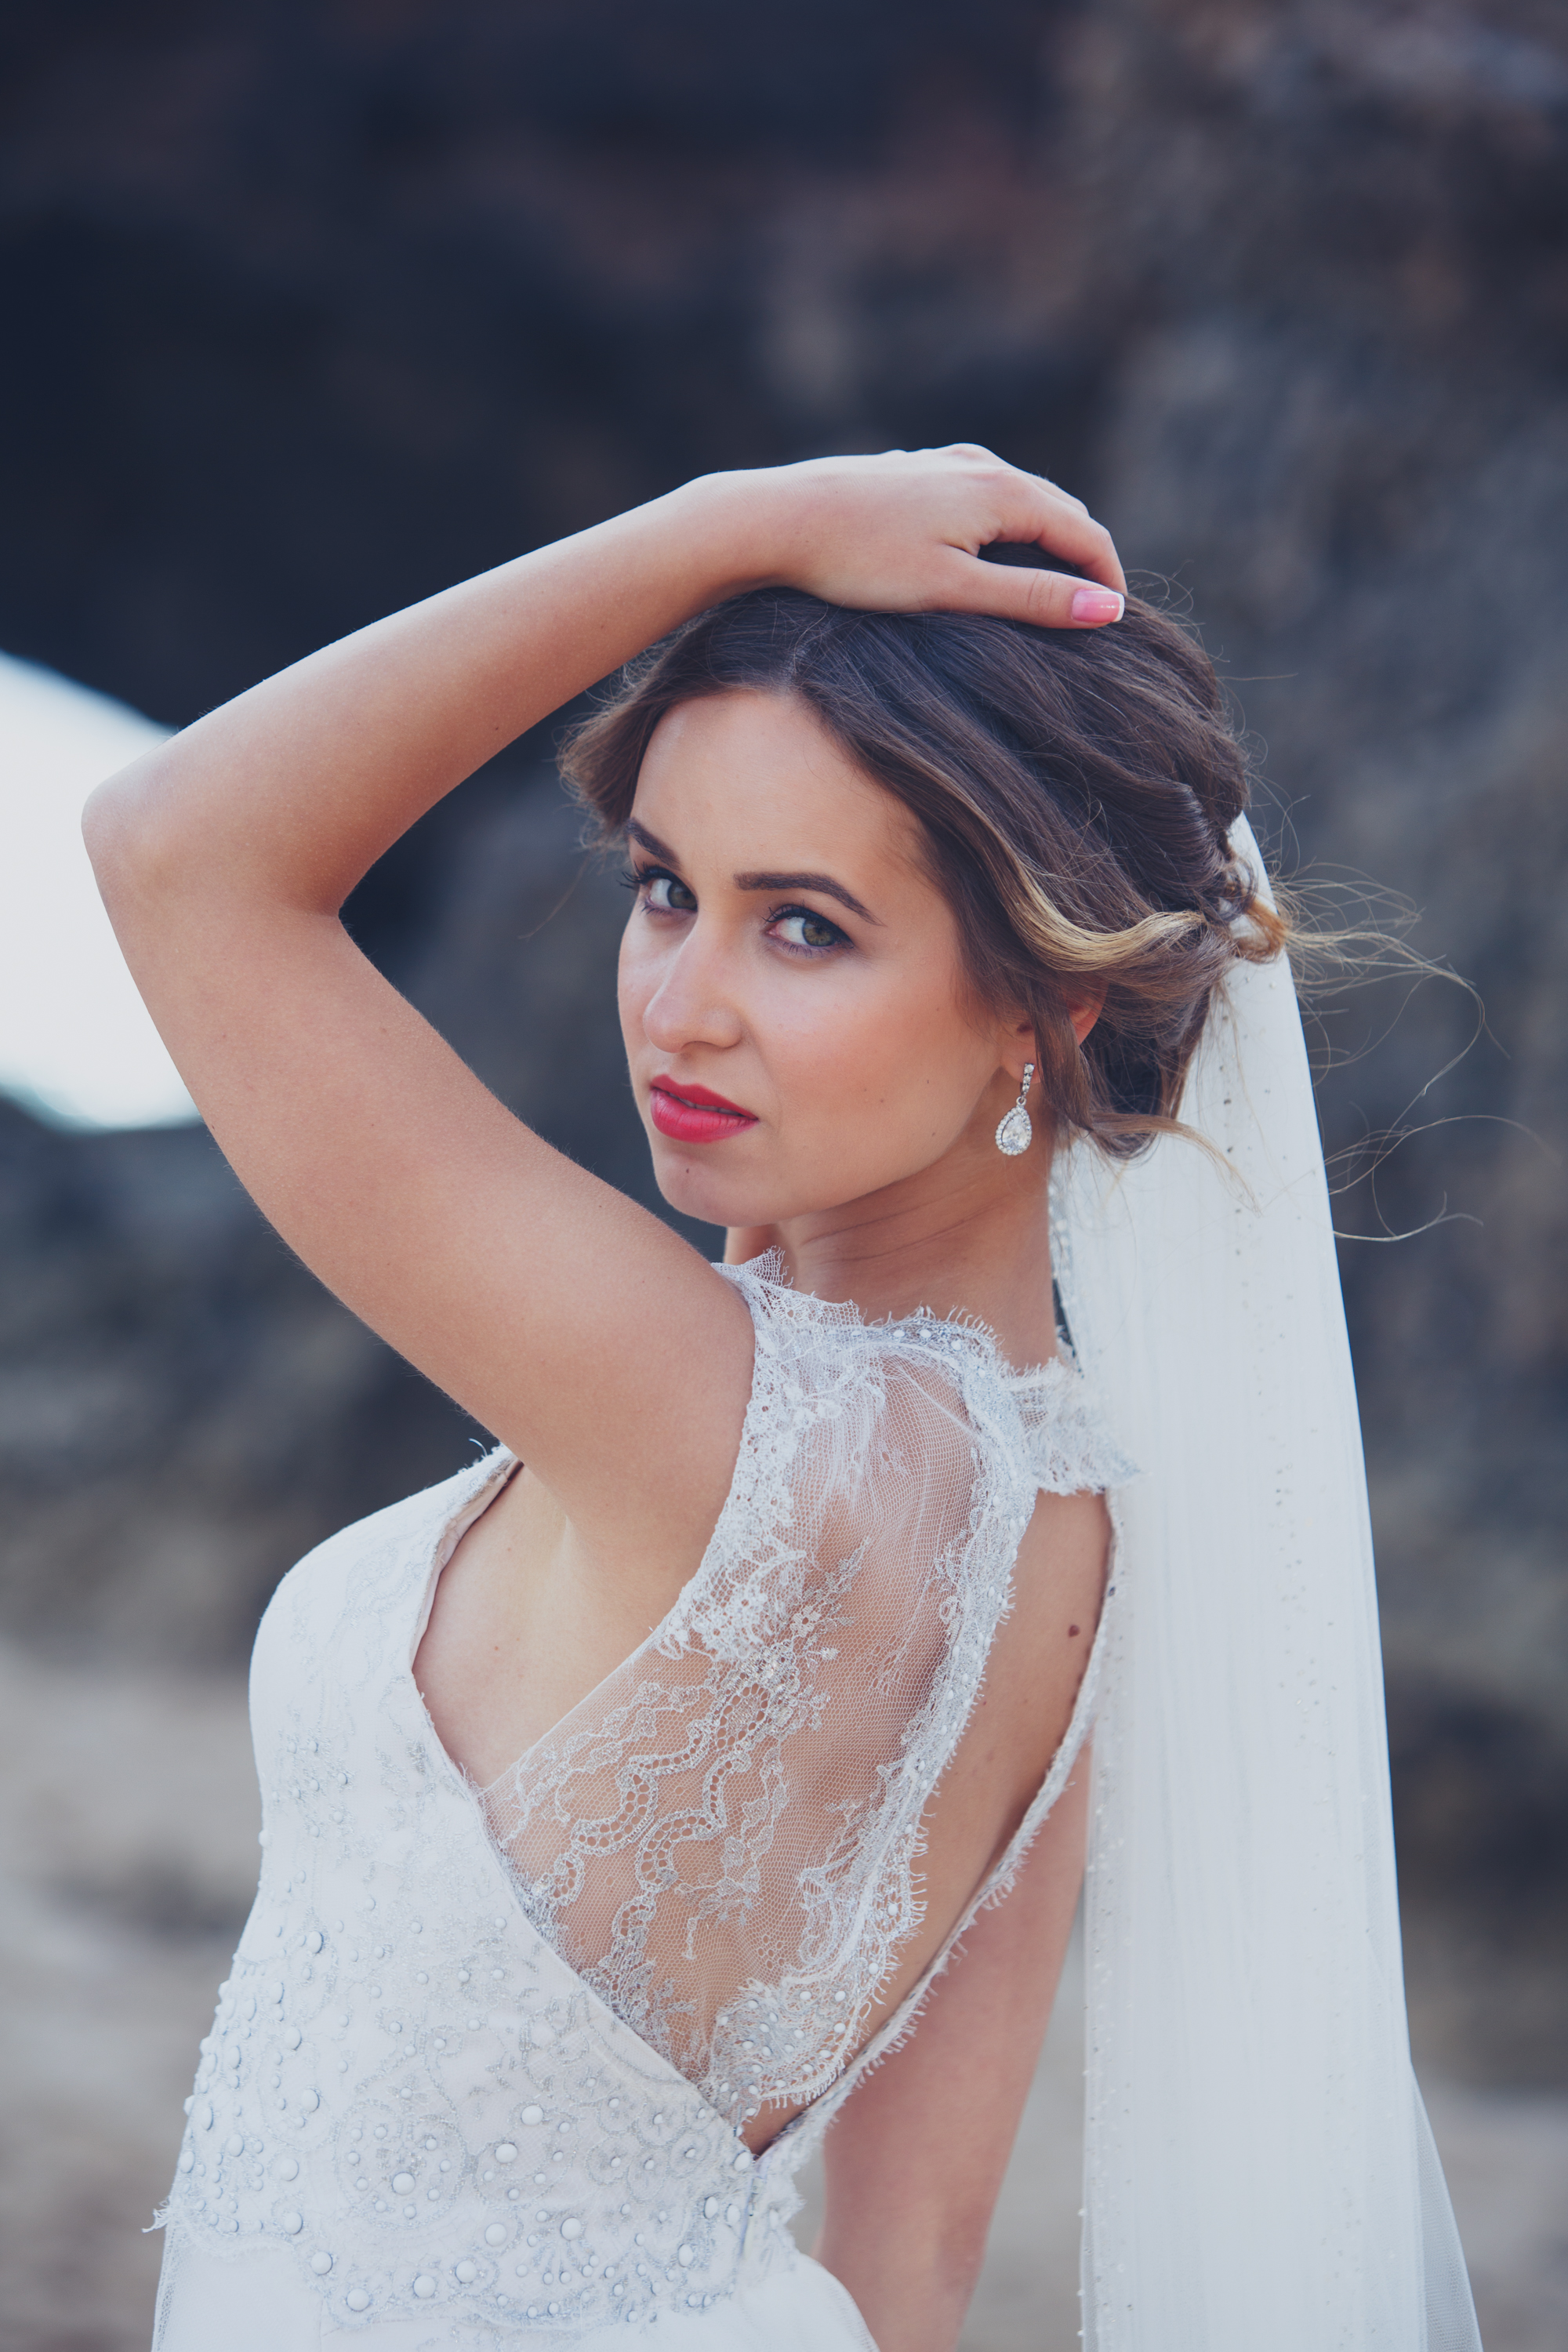 Bridal hair accessories melbourne cbd - Mobile Bridal Hair Makeup Artist In Melbourne Wedding Hair And Makeup